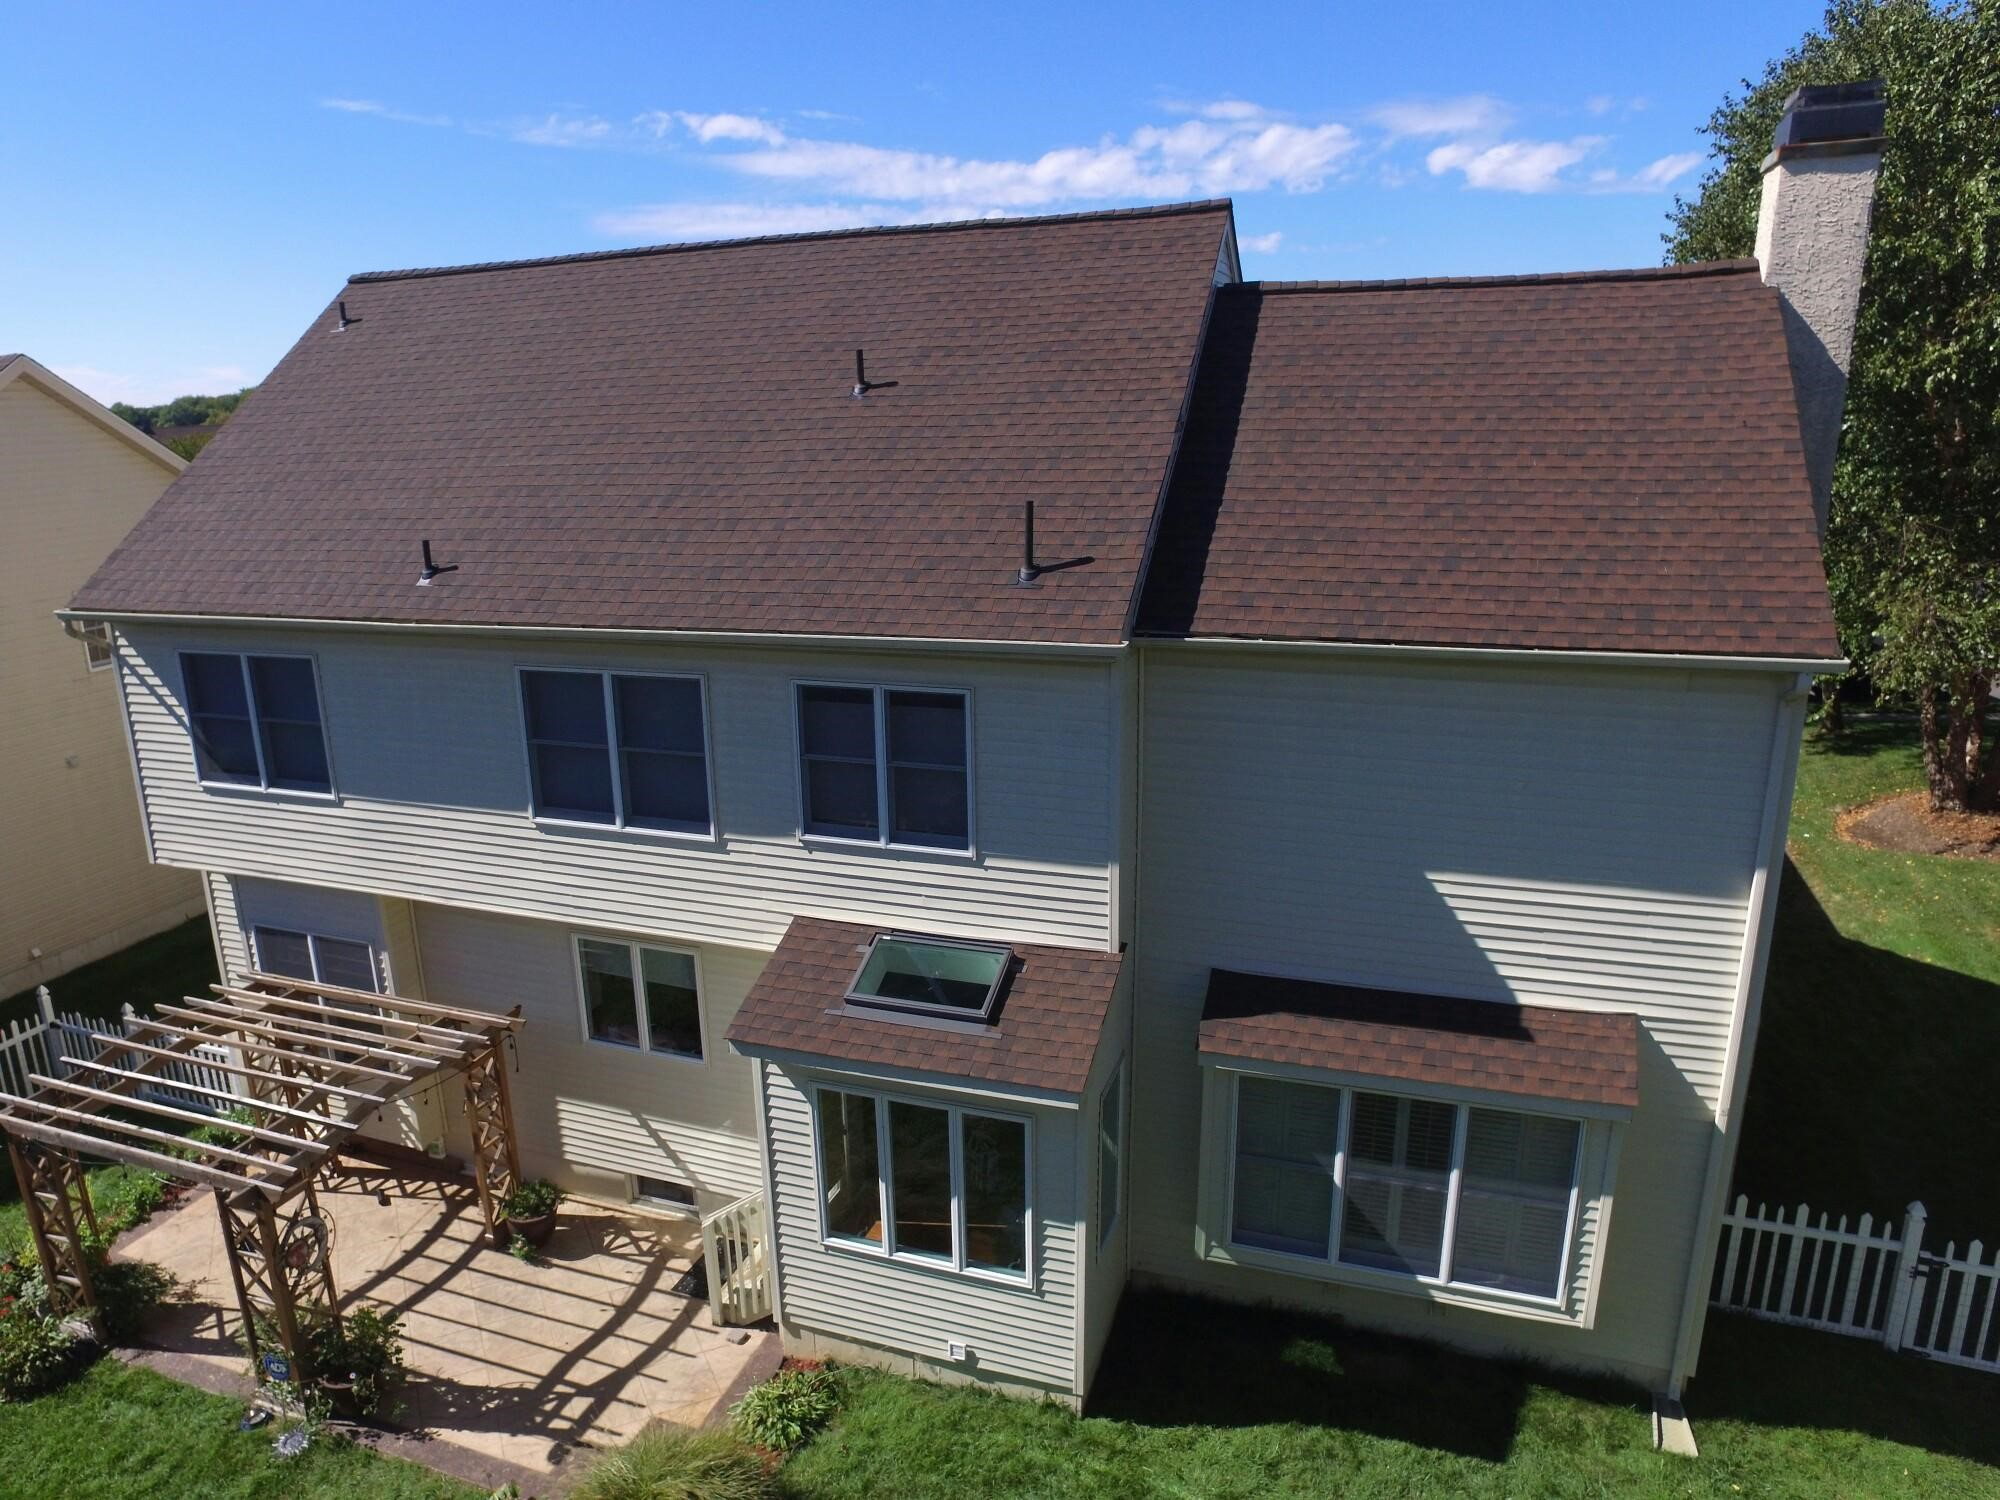 Gaf Timberline Hd Lifetime Roofing System With Hickory